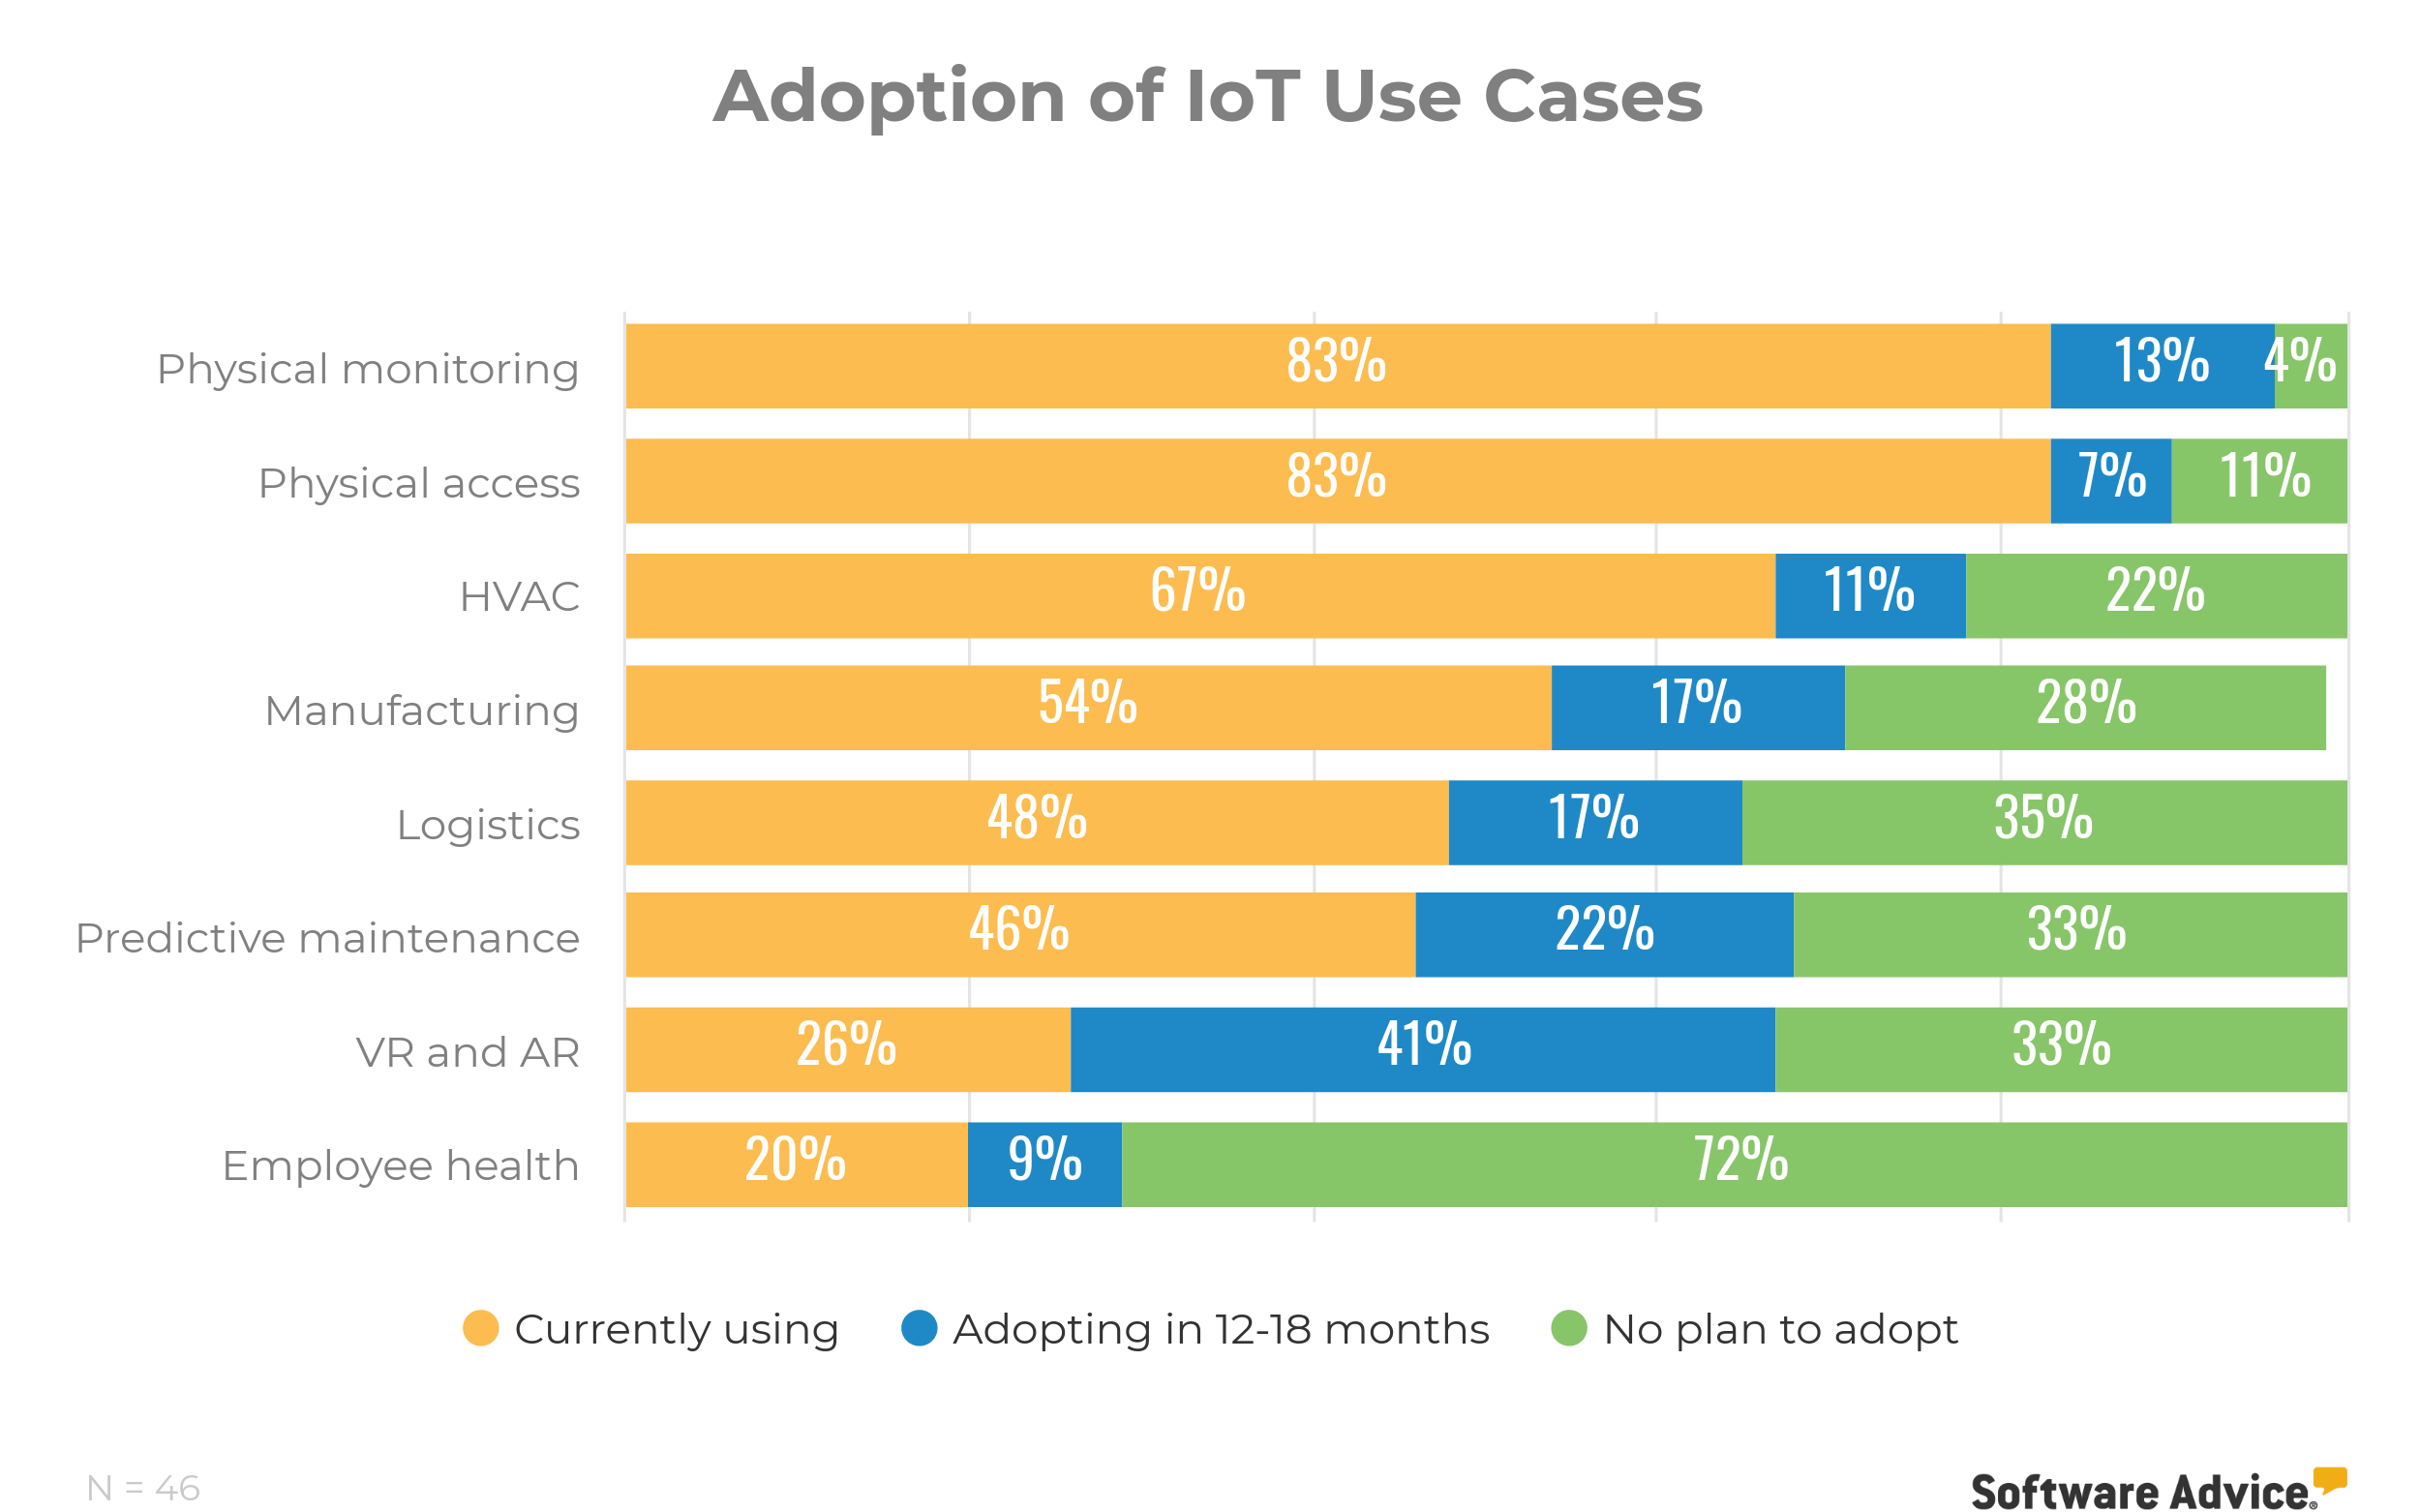 Adoption of IoT Use Cases